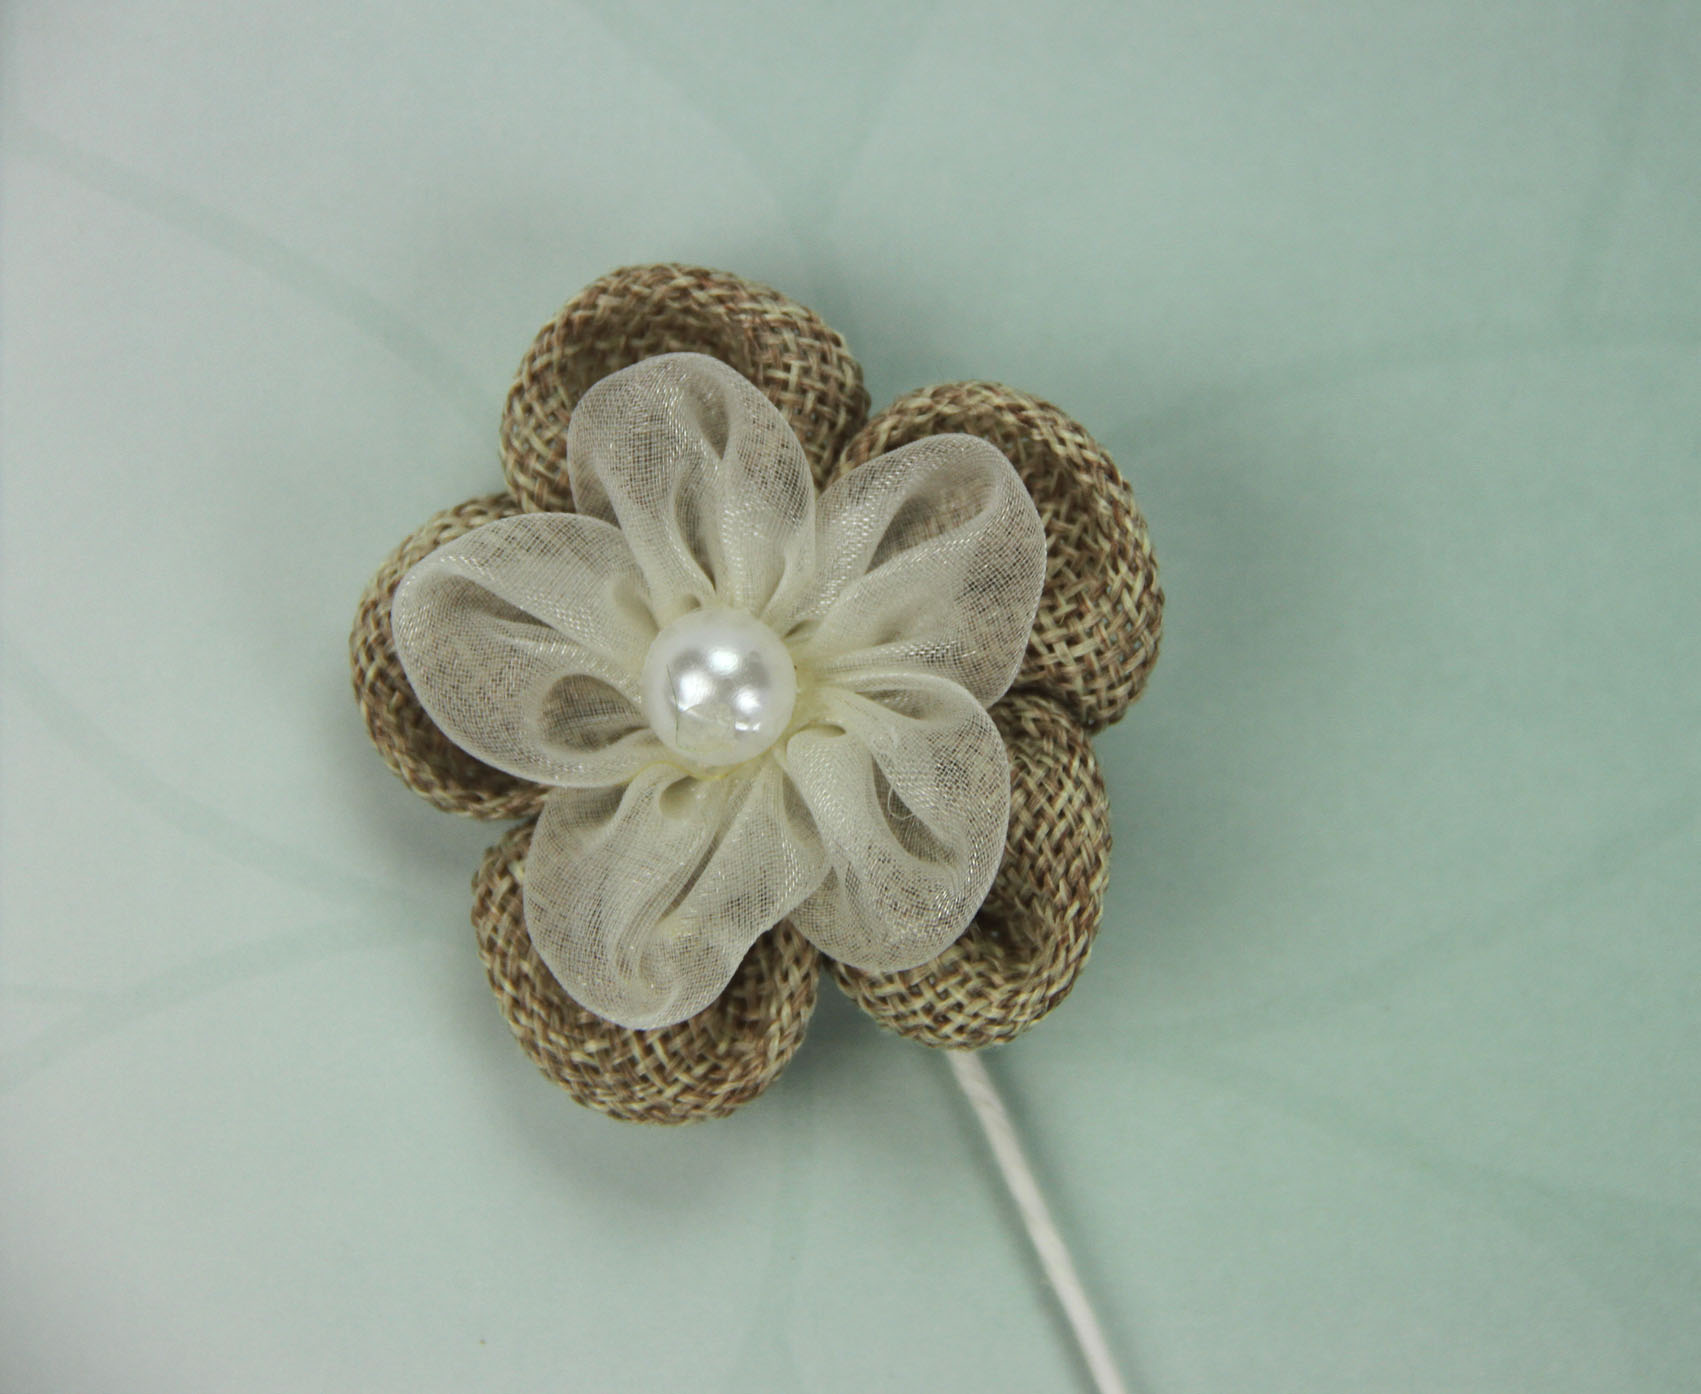 5cm Burlap/Organza Daisy with Pearl Retail Pack